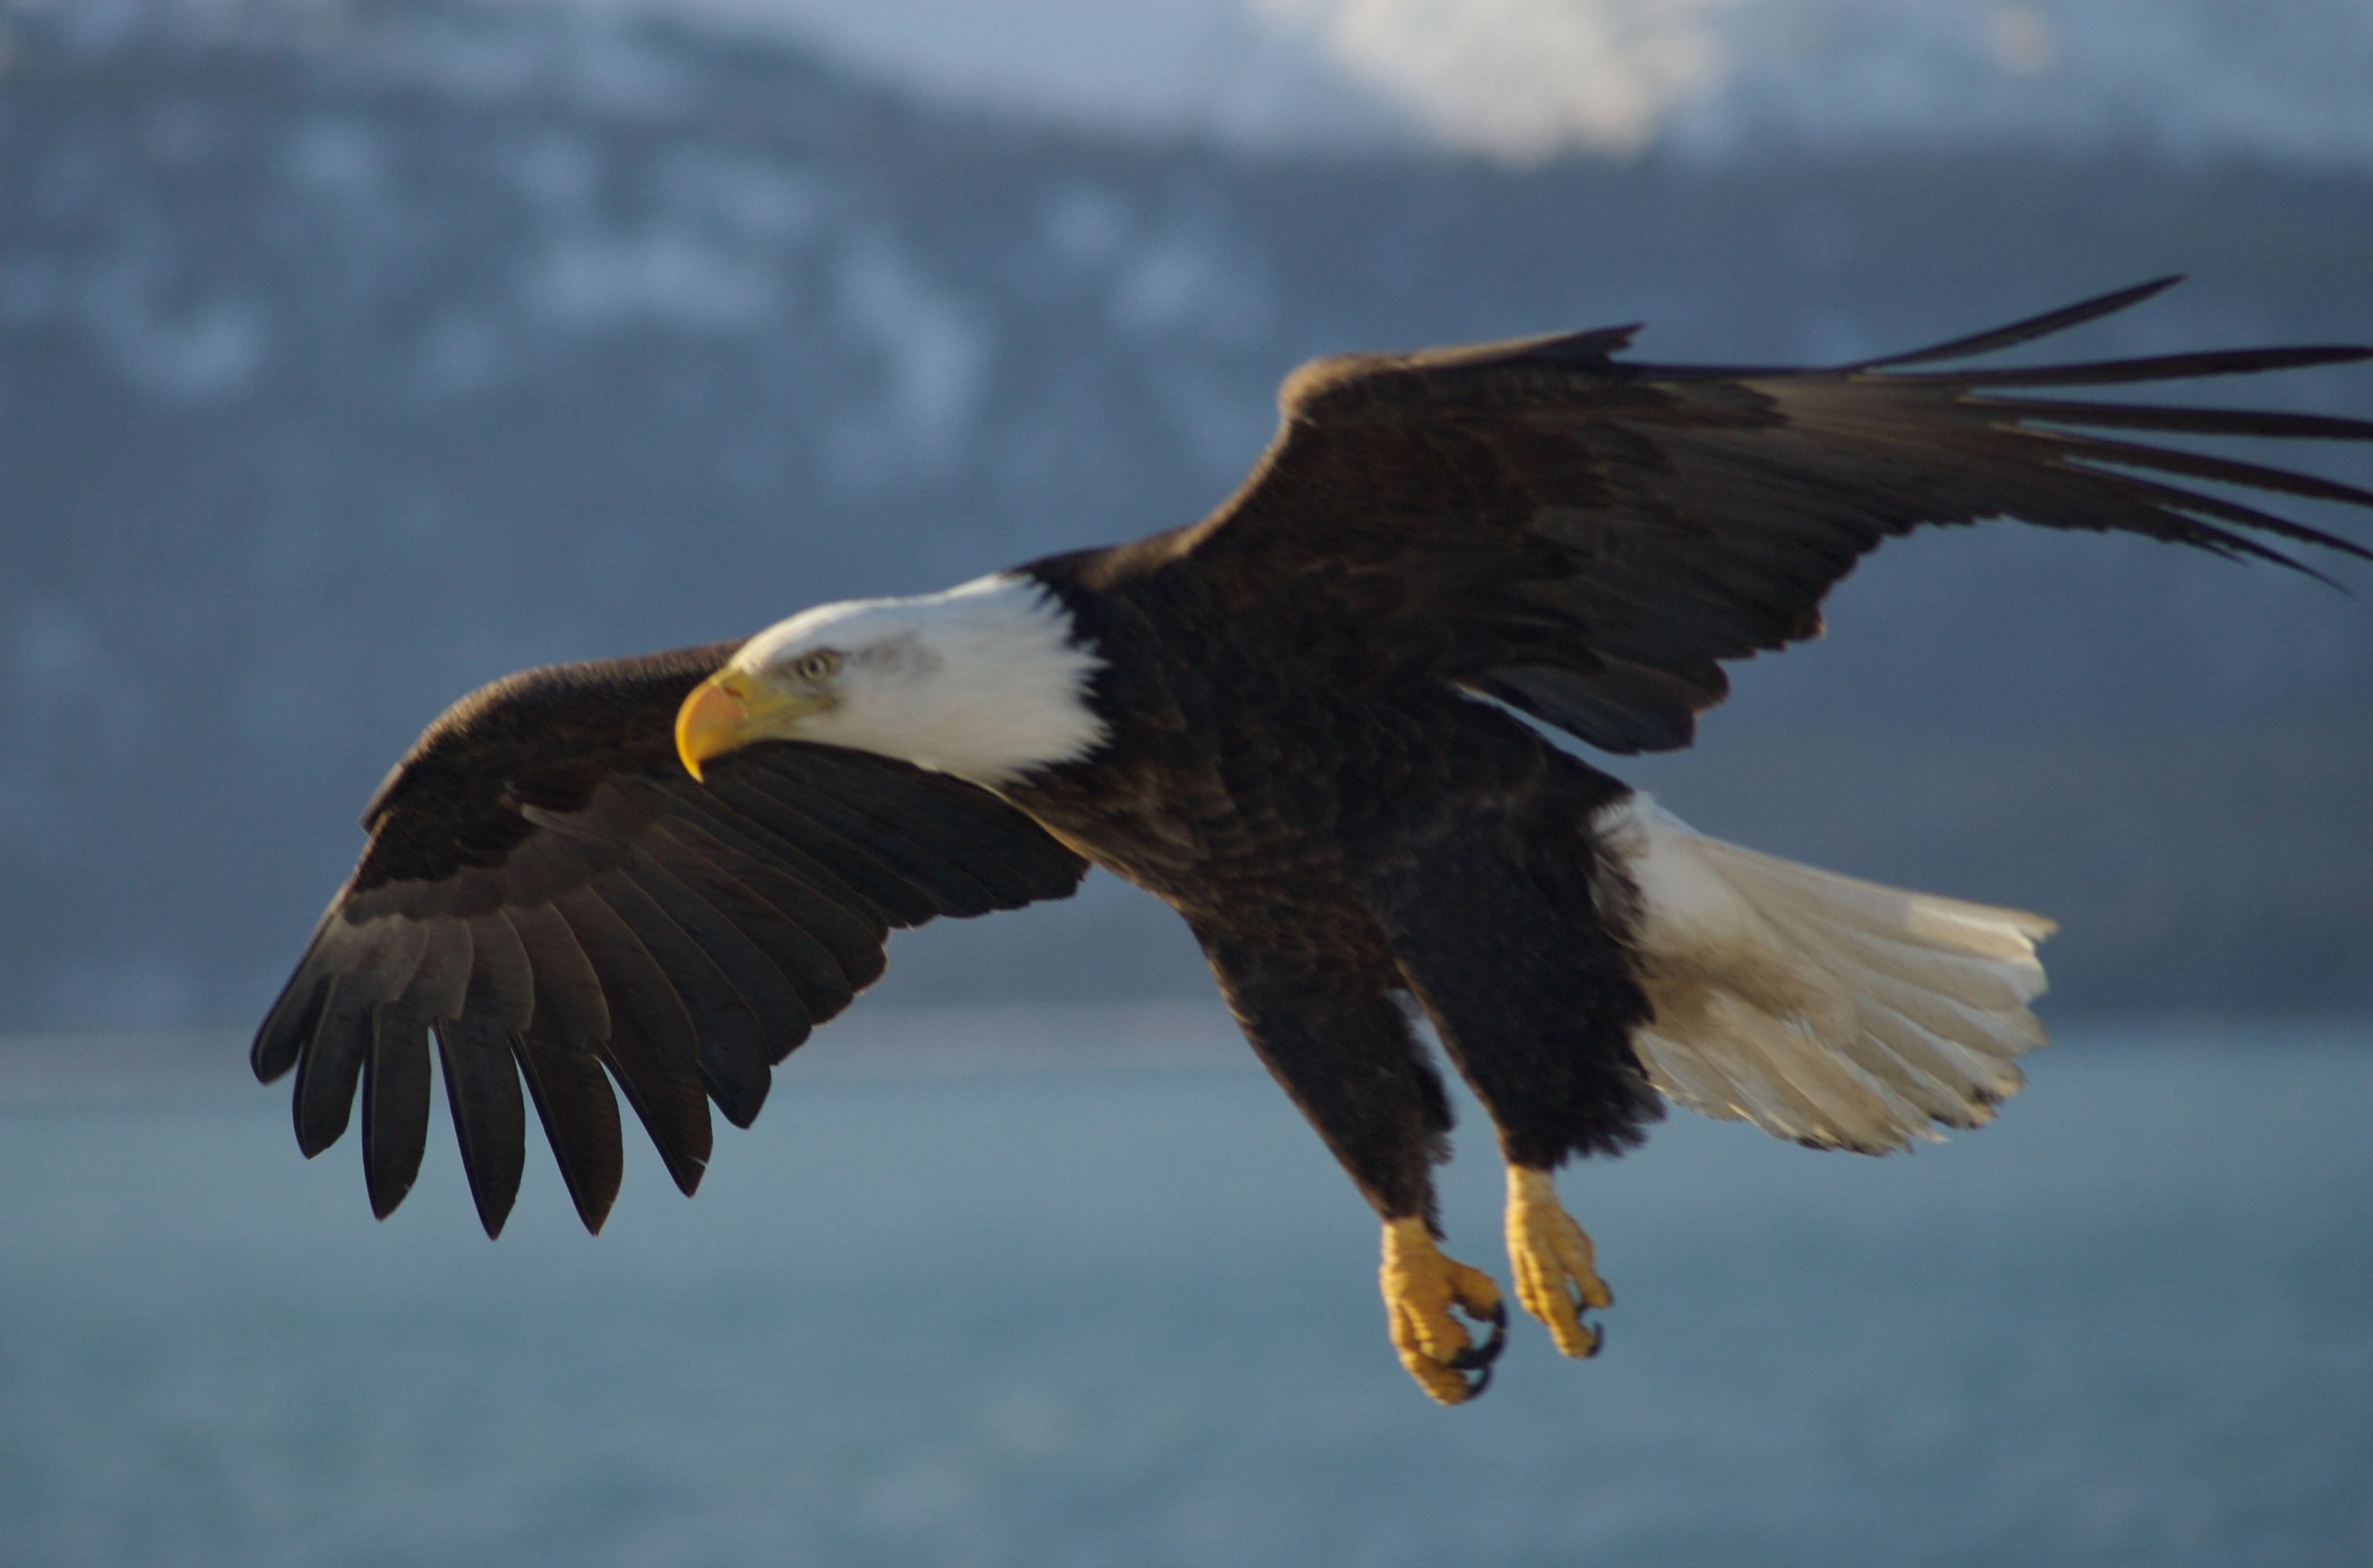 Eagle Large Bird of Prey 795.83 Kb